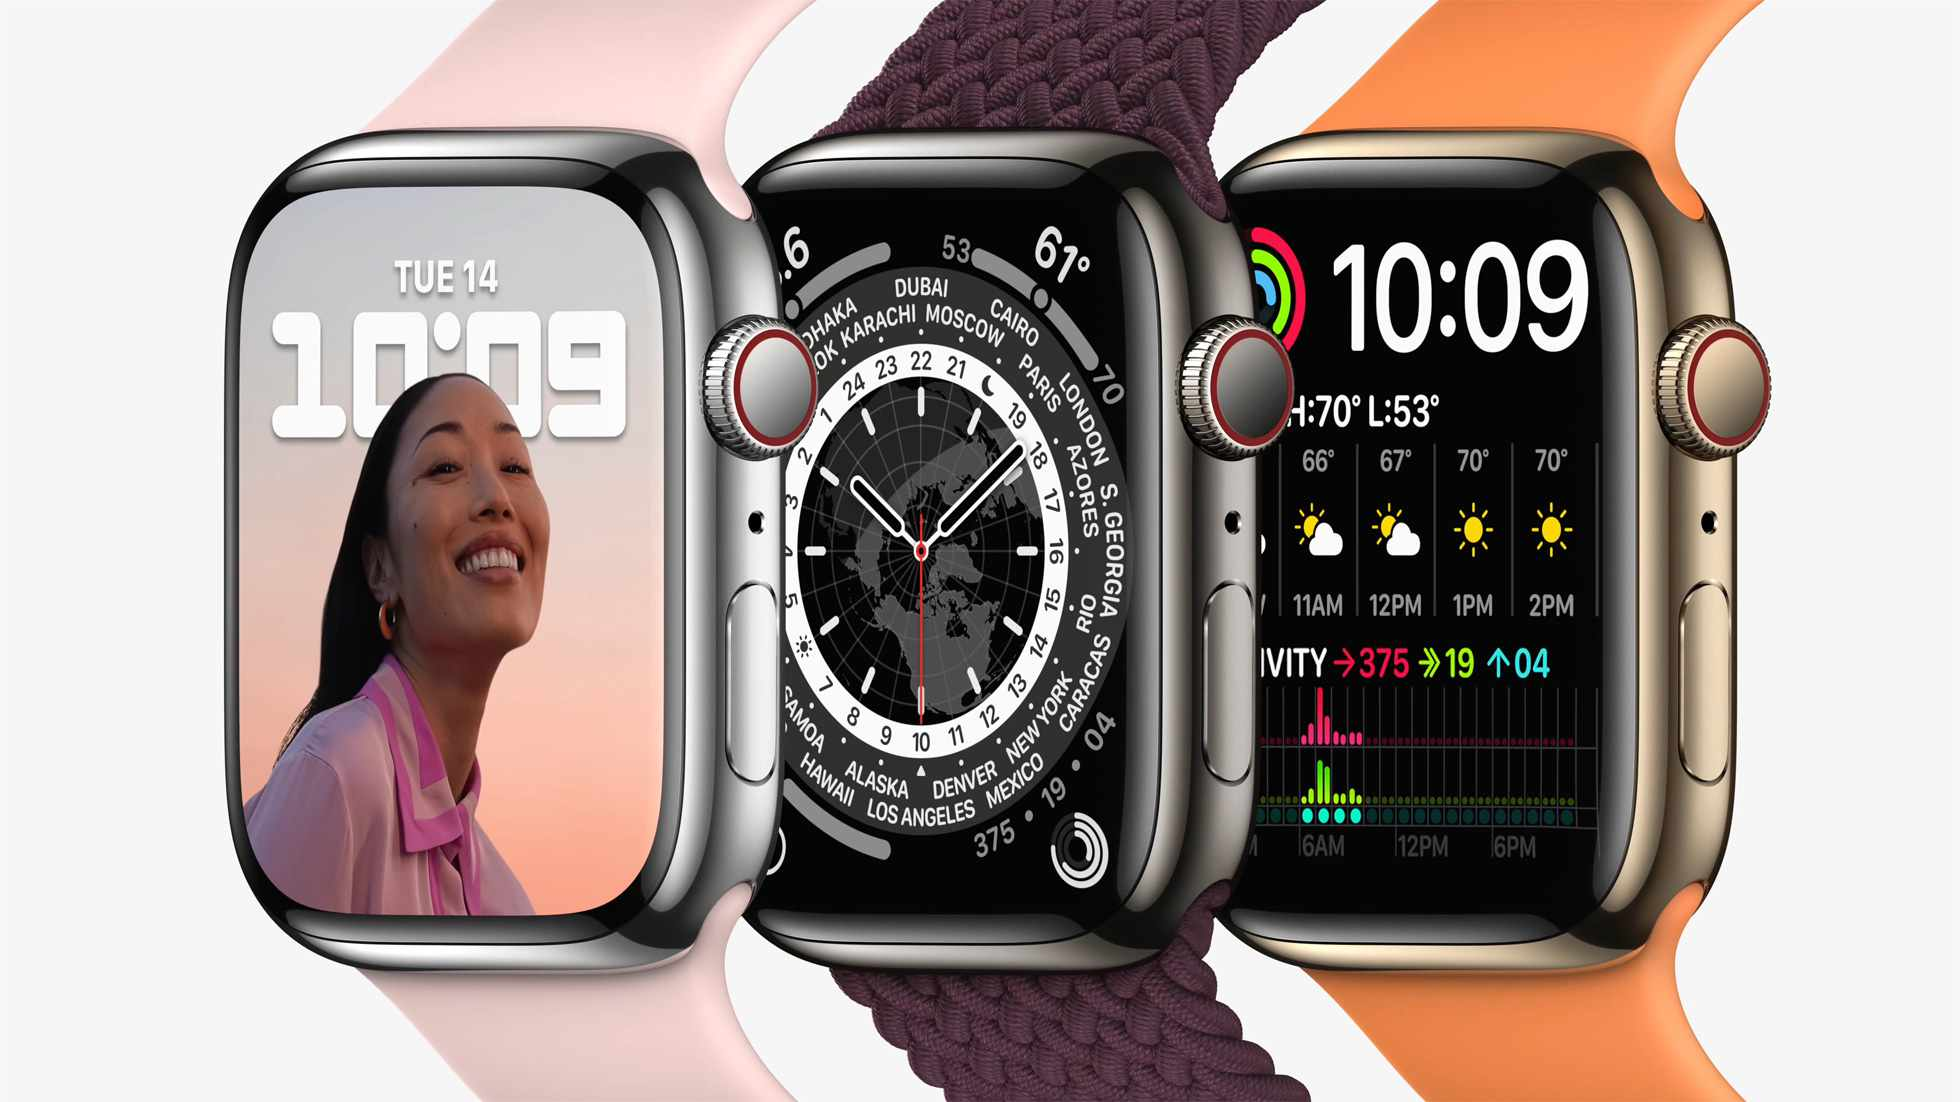 Apple Watch Series 7 in different colors with different watchbands